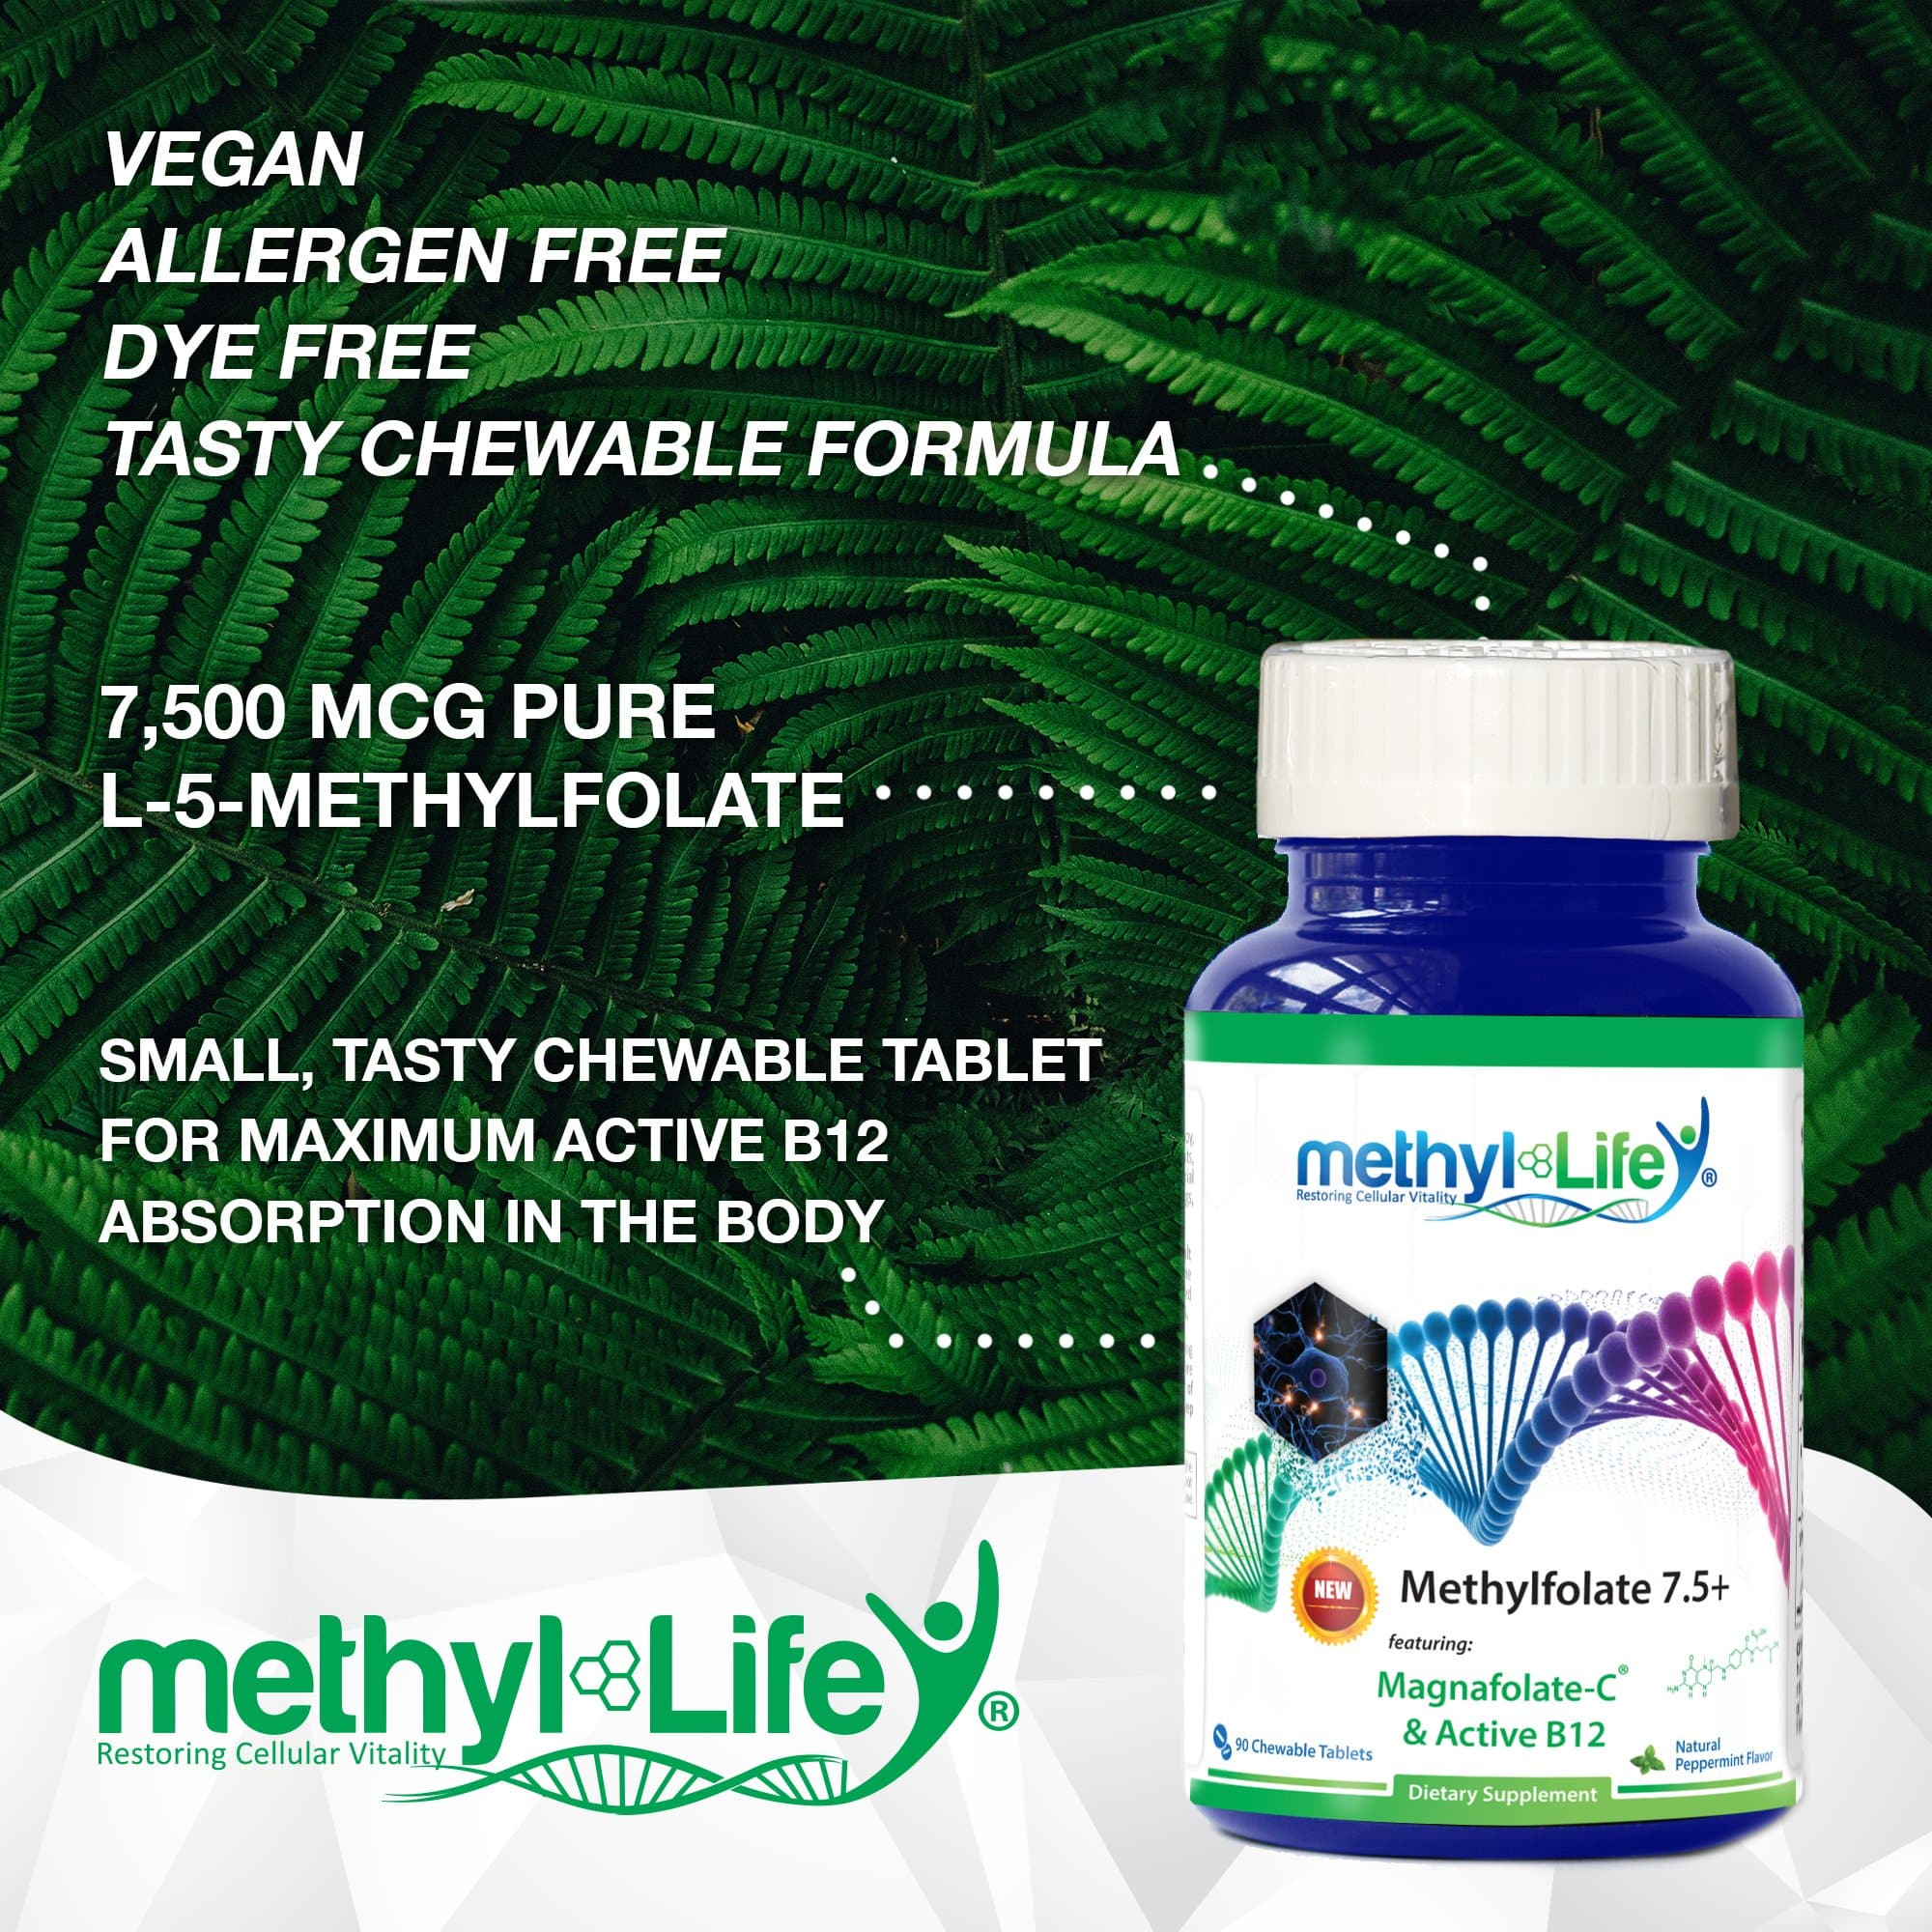 l methylfolate 7.5 mg tablets